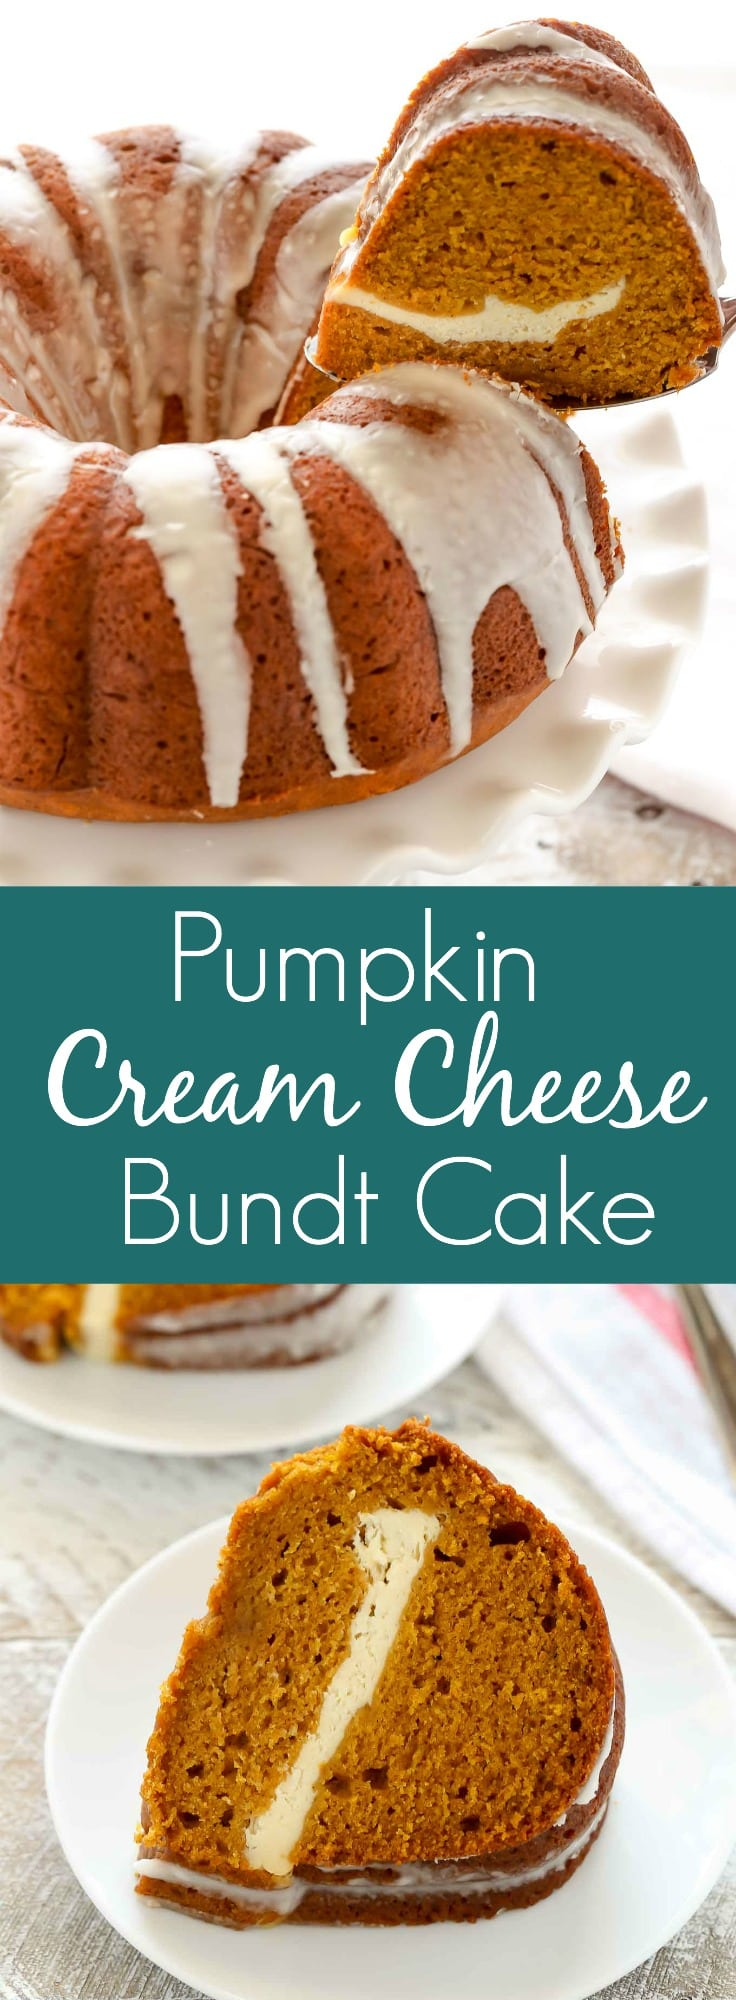 A homemade pumpkin bundt cake filled with cream cheese and topped with an easy vanilla glaze. This Pumpkin Cream Cheese Bundt Cake is a perfect dessert for fall!